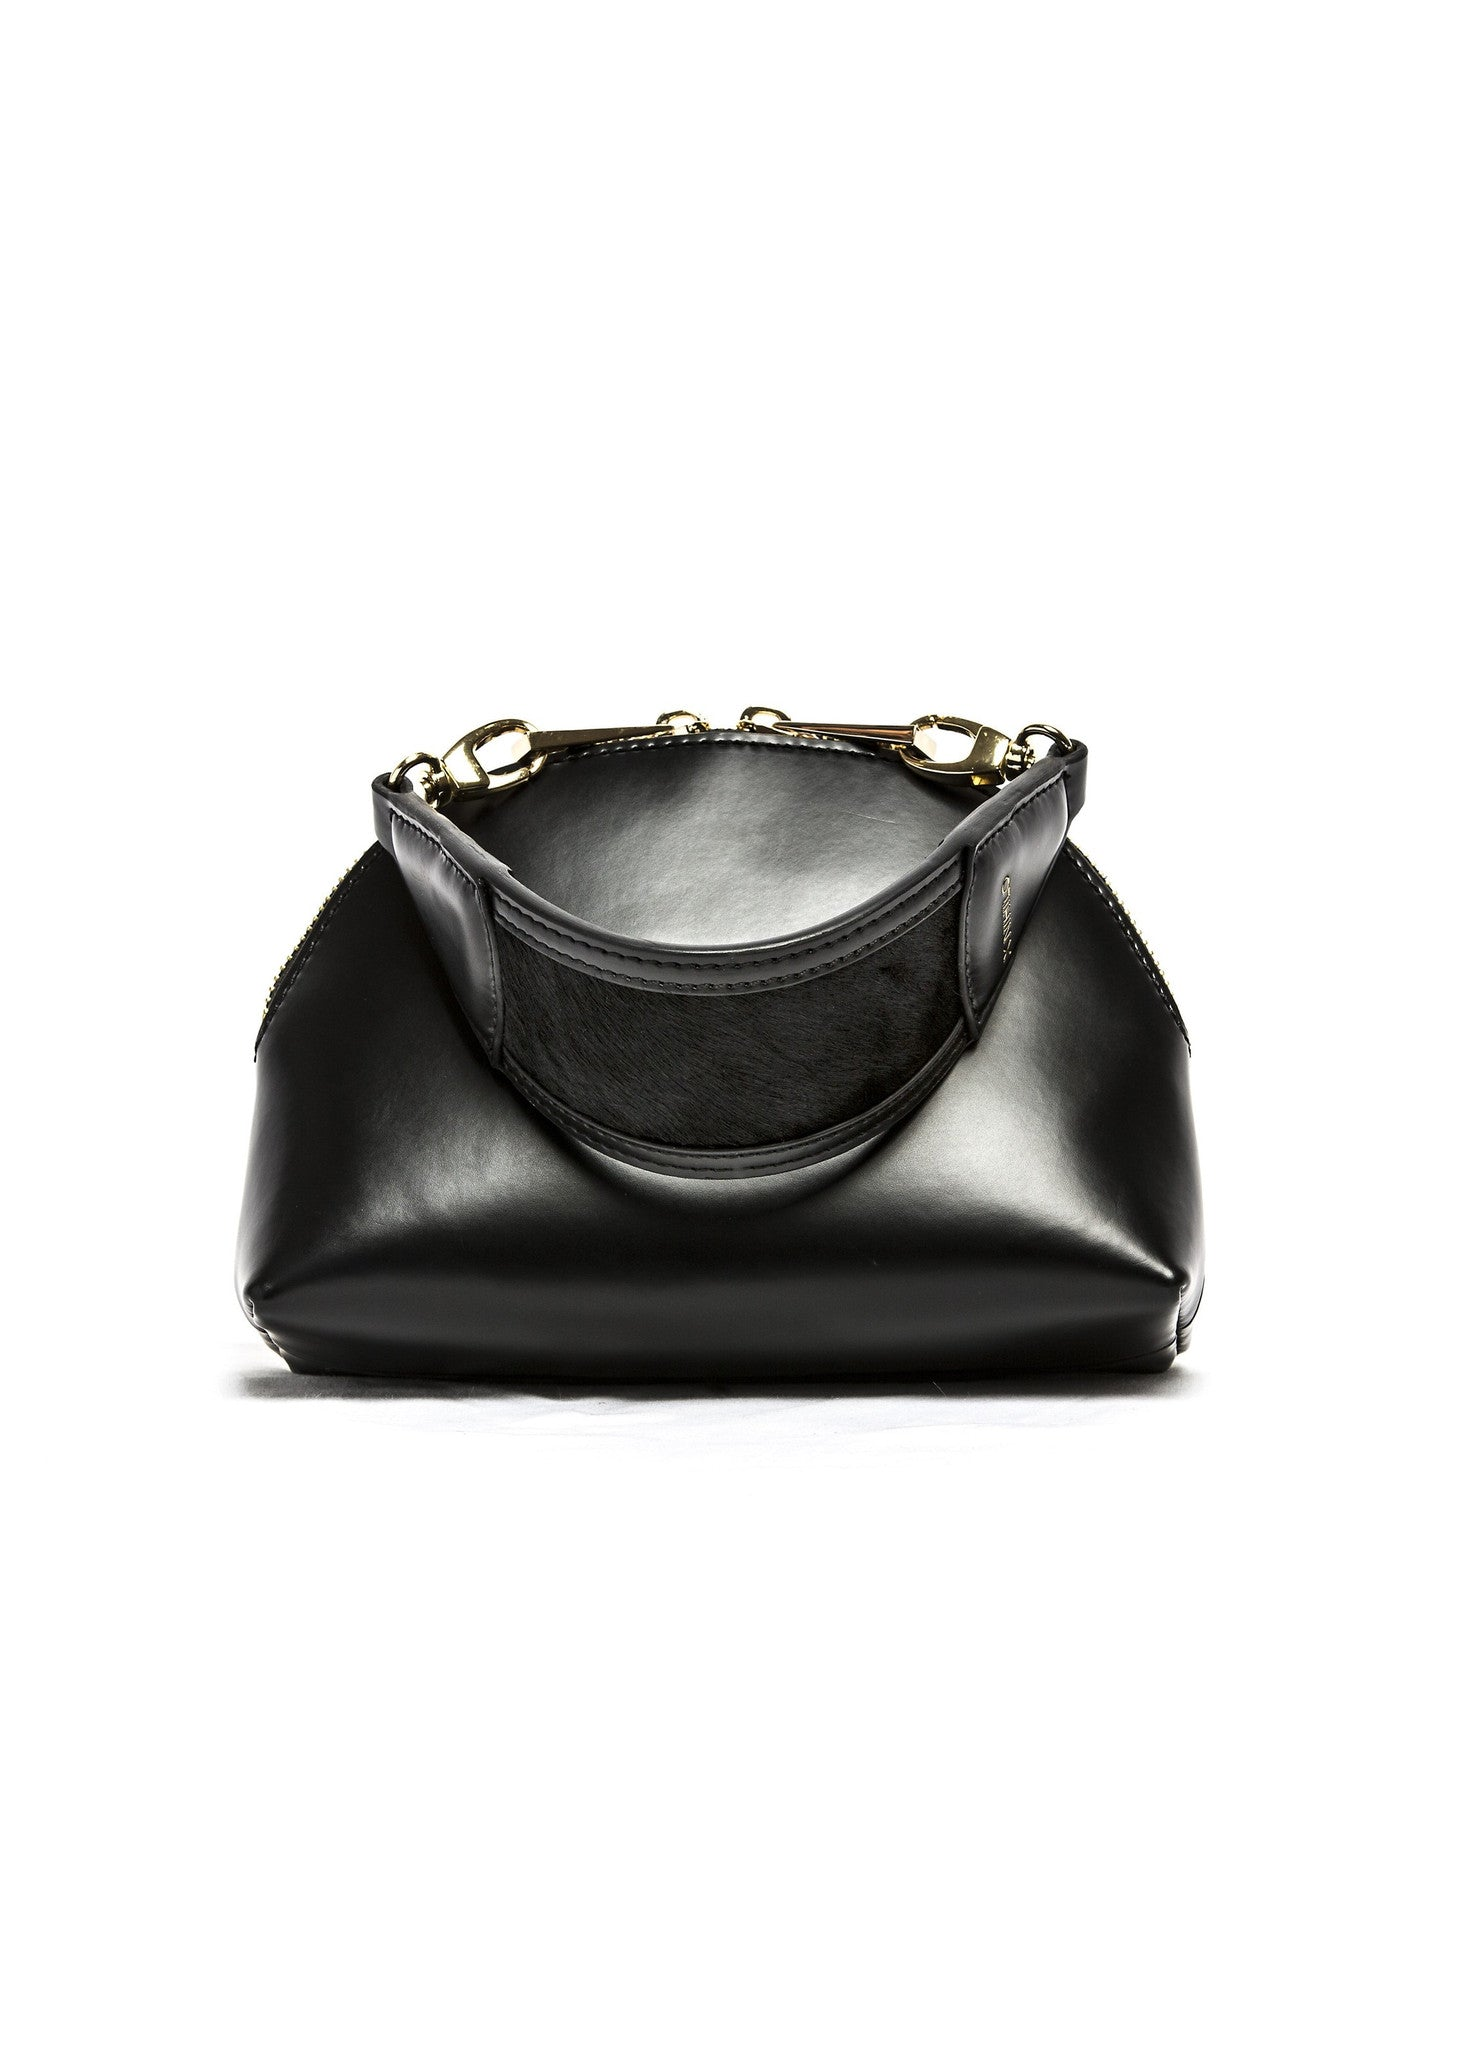 Xnihilo stella clutch black